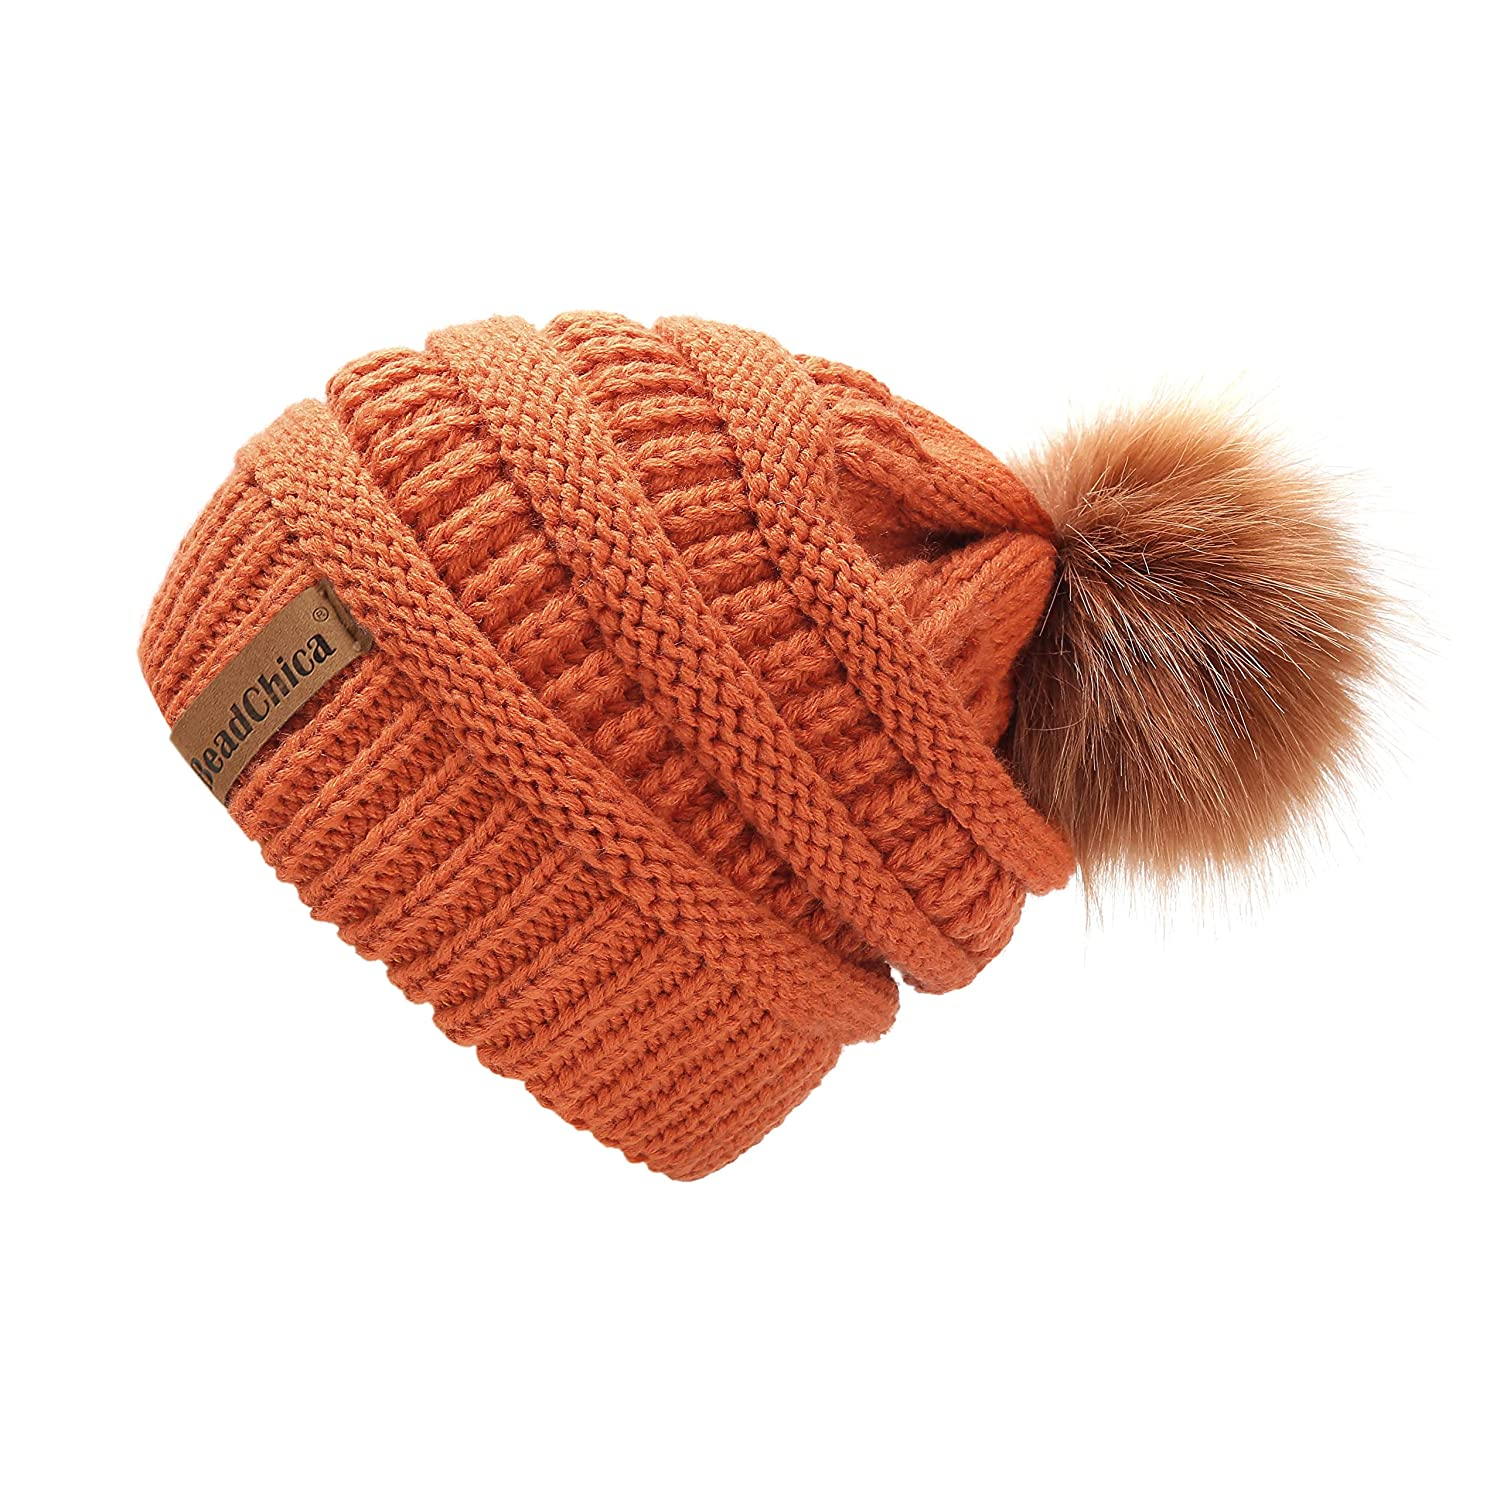 9934843eea6 Winter Knit Beanie Slouchy Hat Soft Thick Warm Beanie for Women with Faux  Fur Pompom Skull Caps (Orange) at Amazon Women s Clothing store